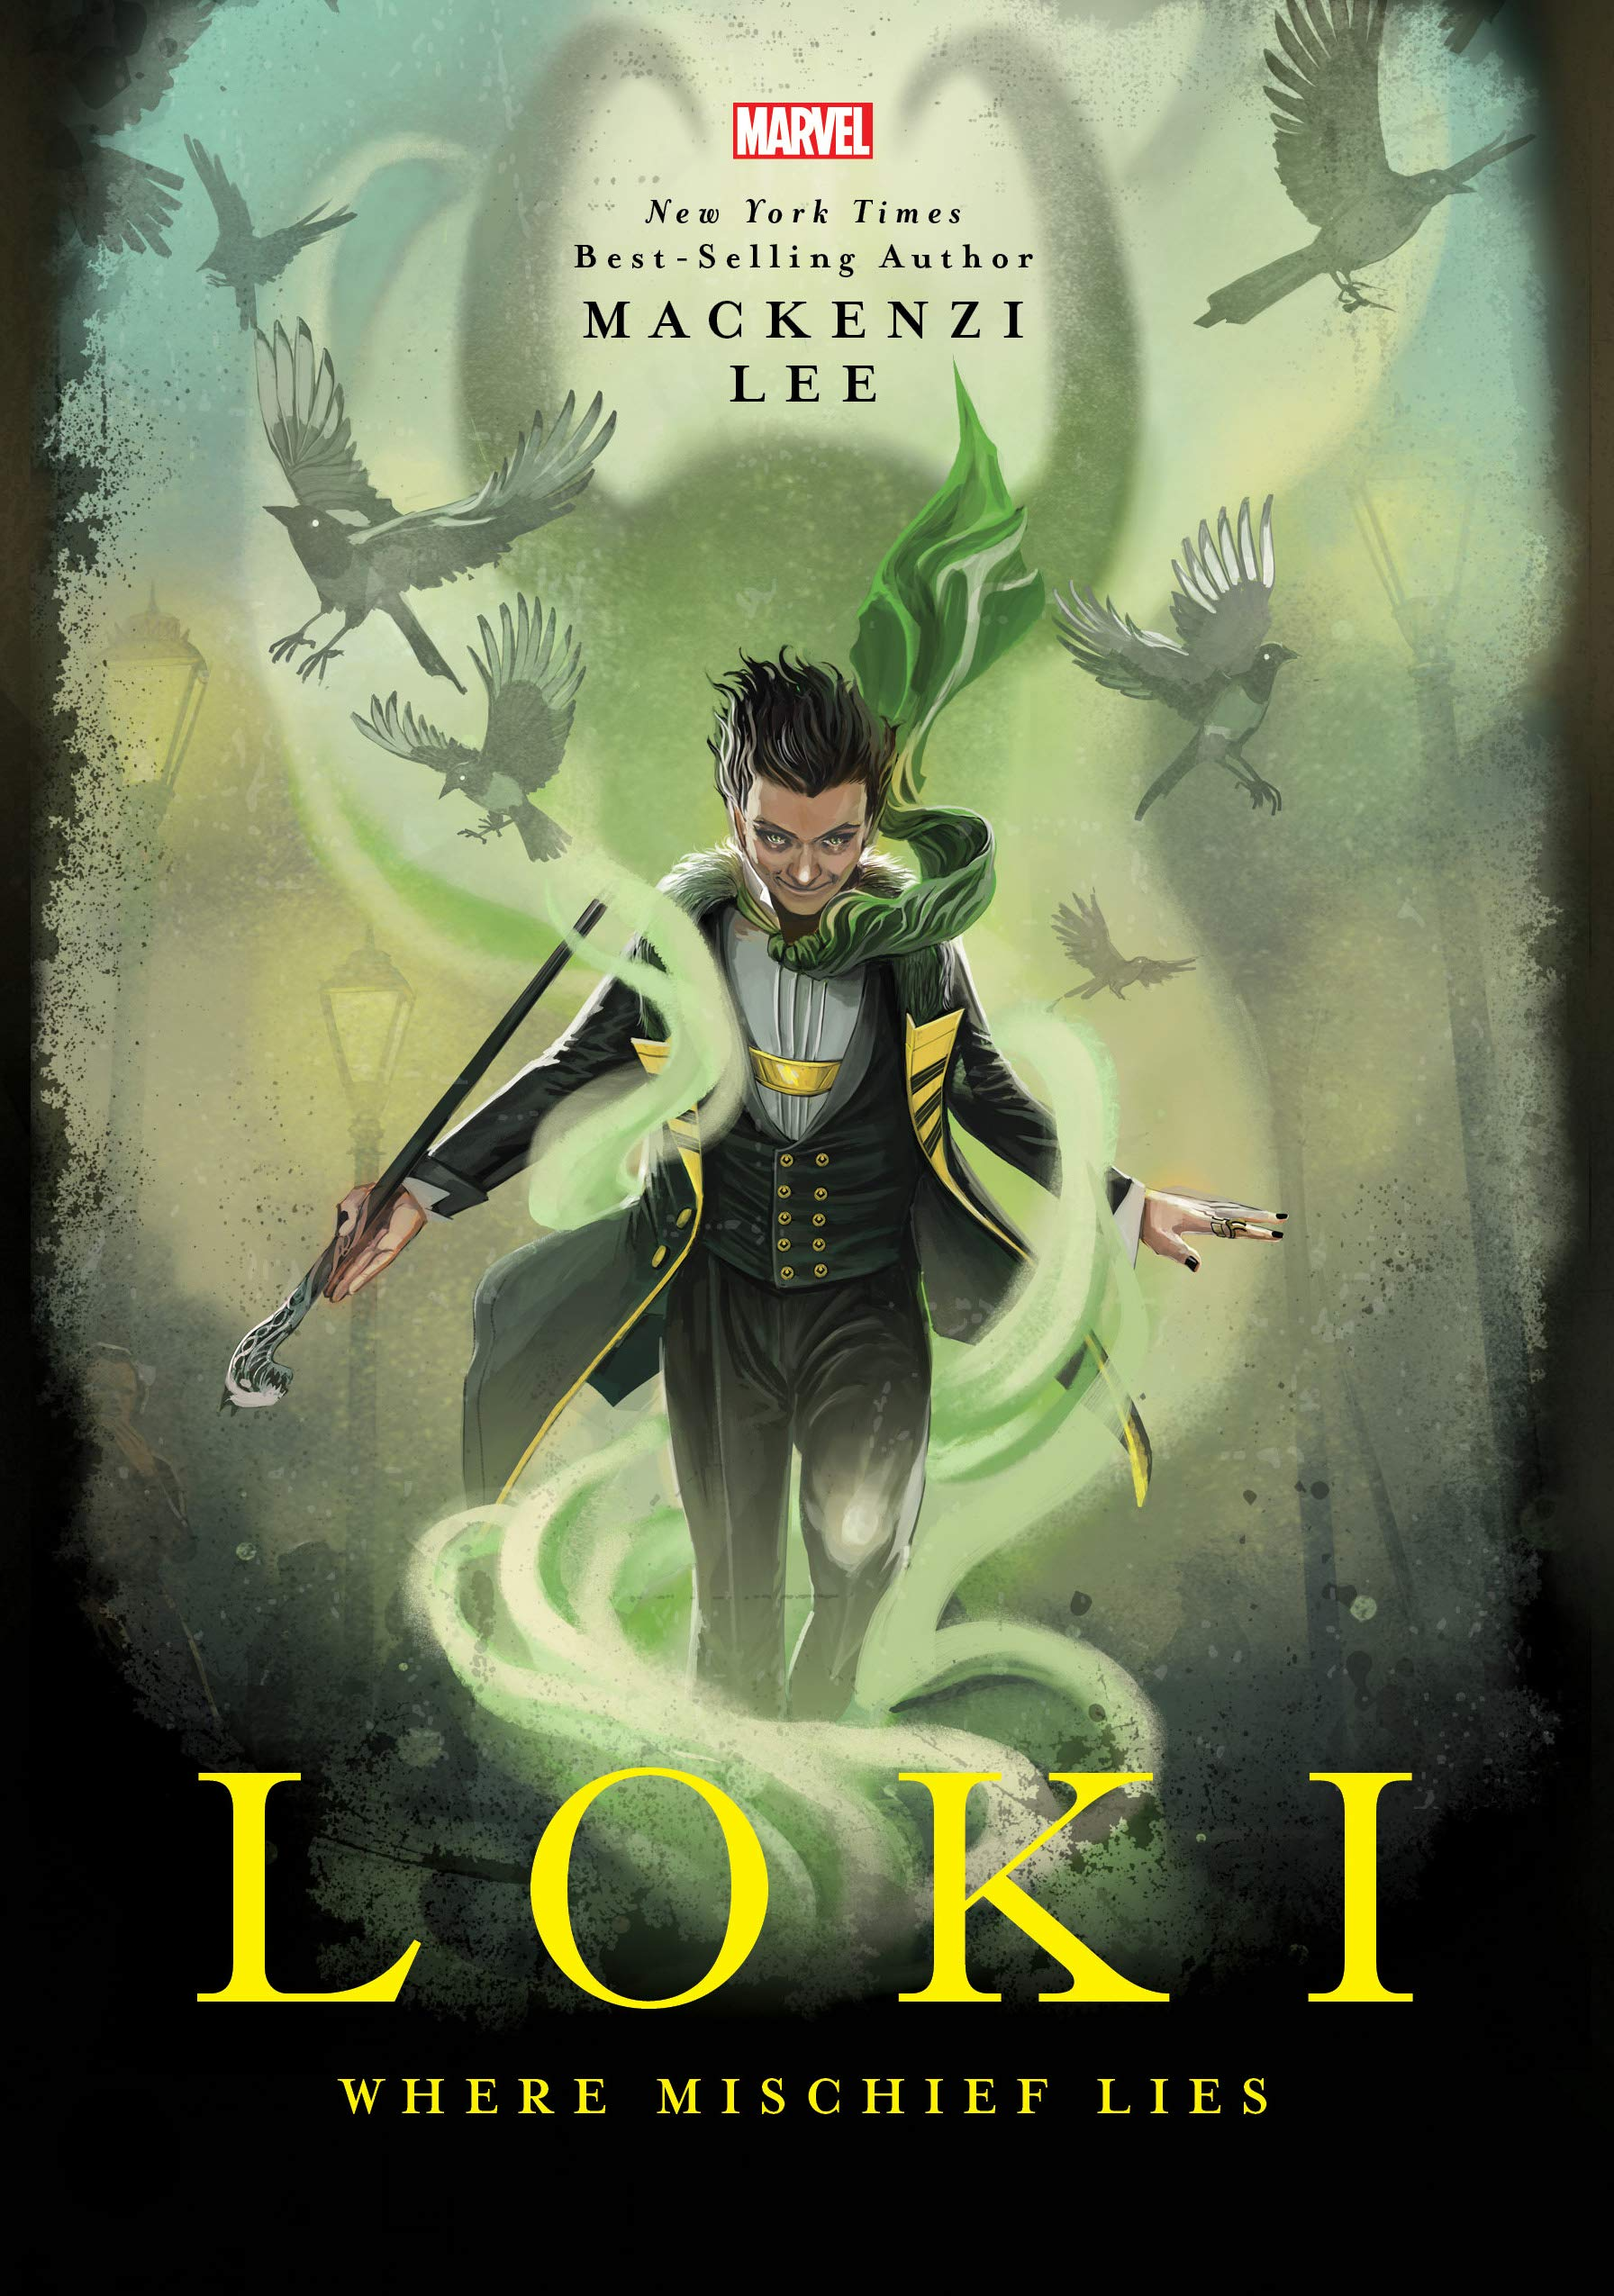 Amazon.com: Loki: Where Mischief Lies (9781368022262): Lee ...